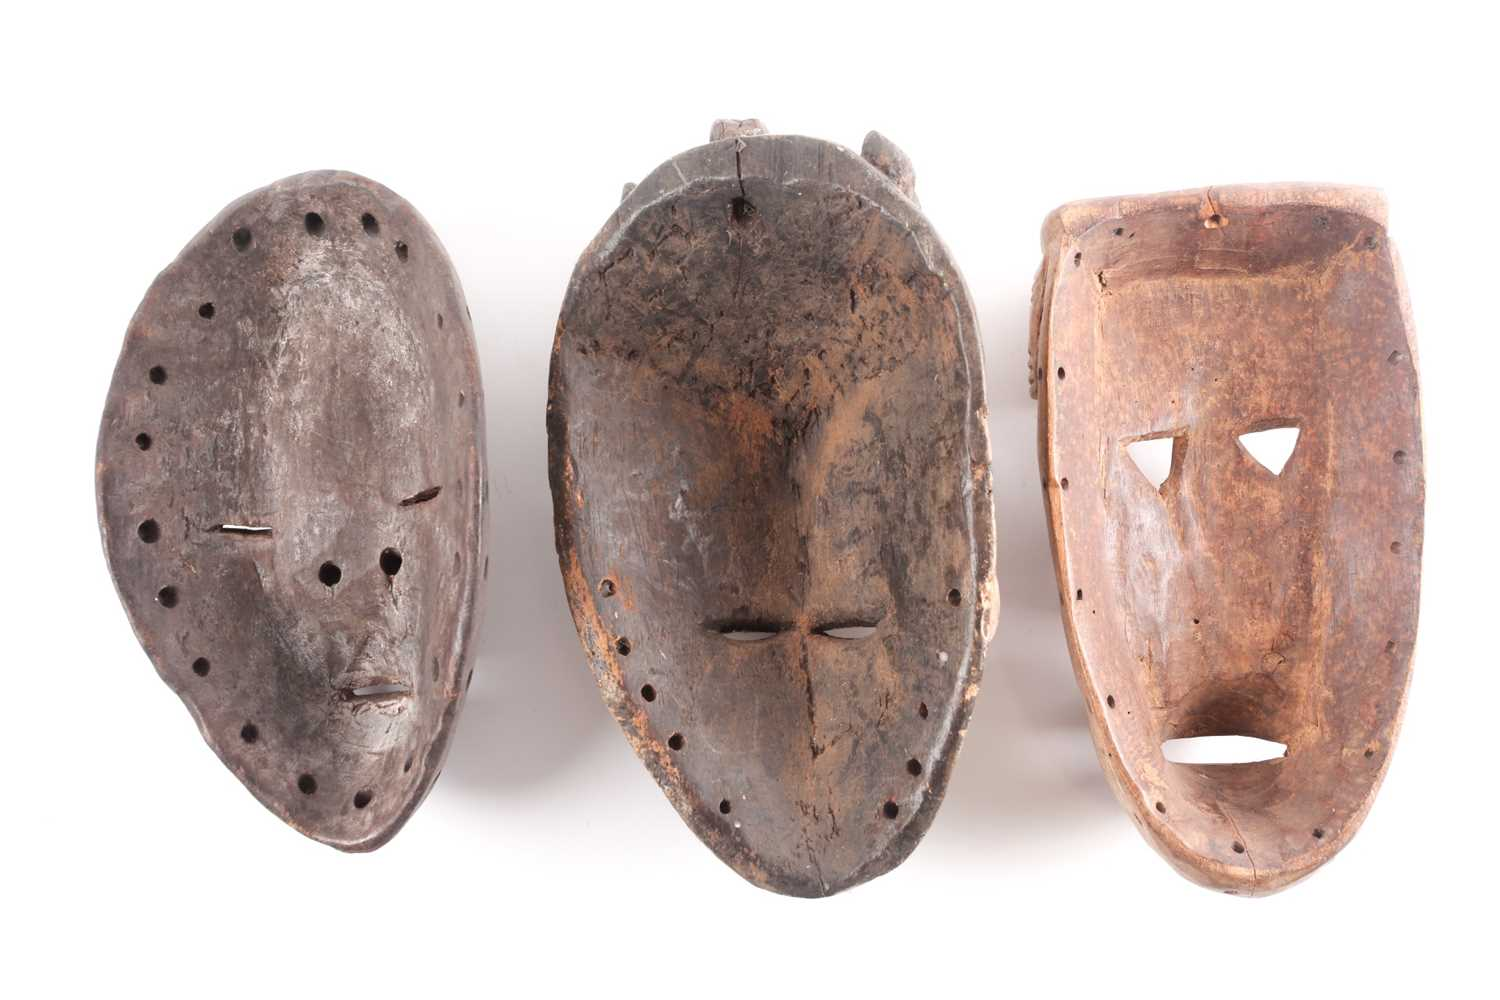 A Guere mask, Ivory Coast, the protruding forehead with geometric carving, above triangular eyes - Image 2 of 2